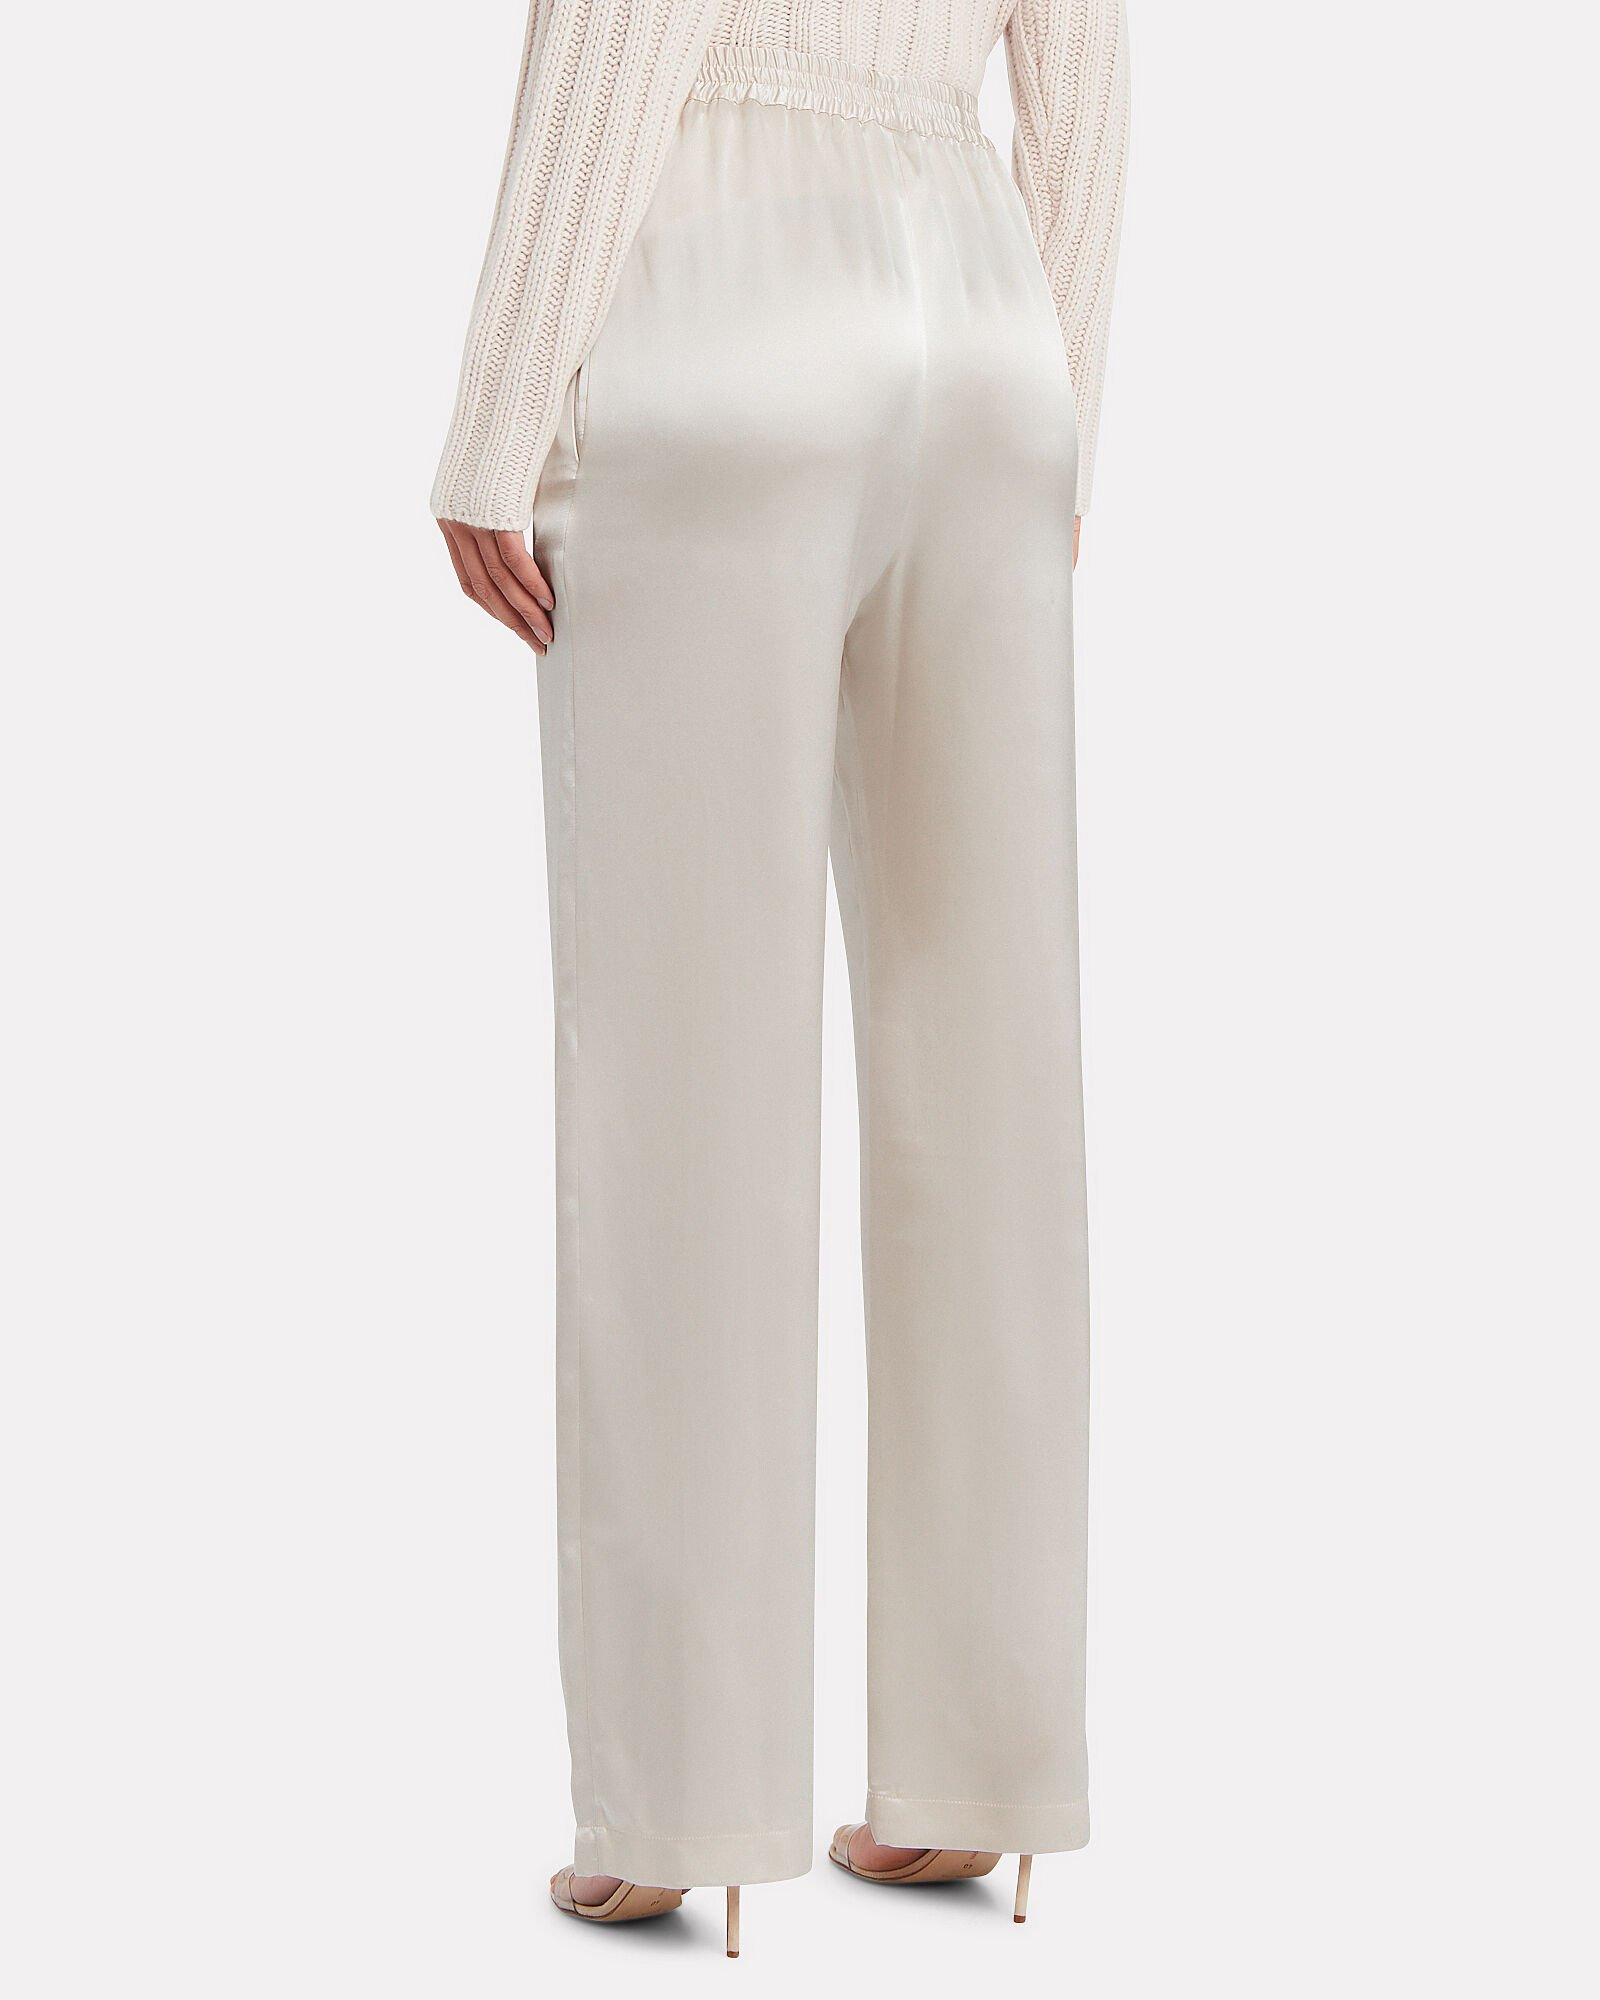 Penelope Silk Charmeuse Pants, POWDER, hi-res